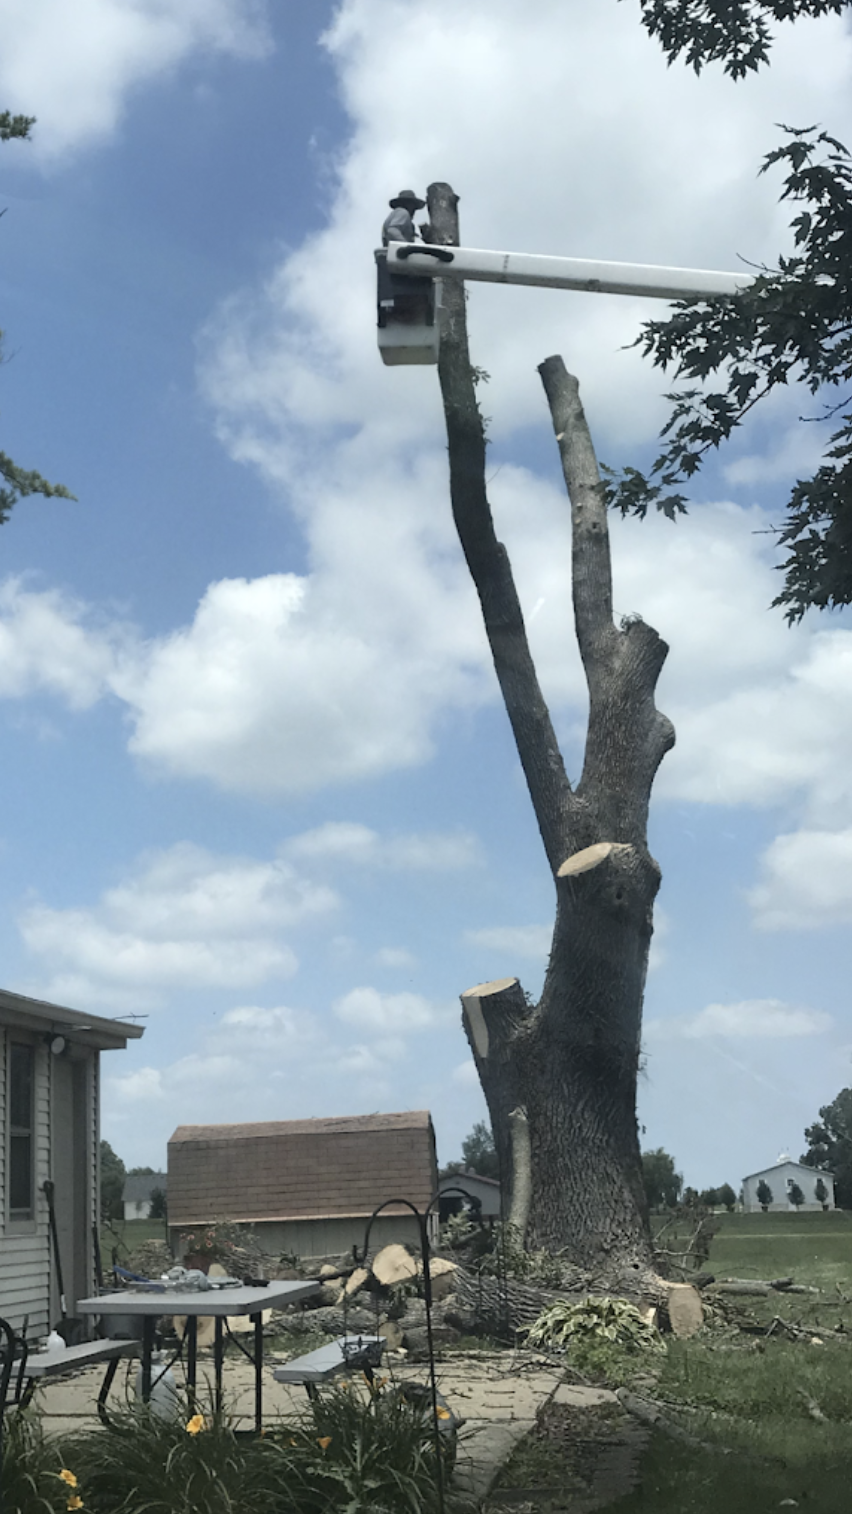 black-cherry-tree-service-tree-removal-bucket-truck-service.png